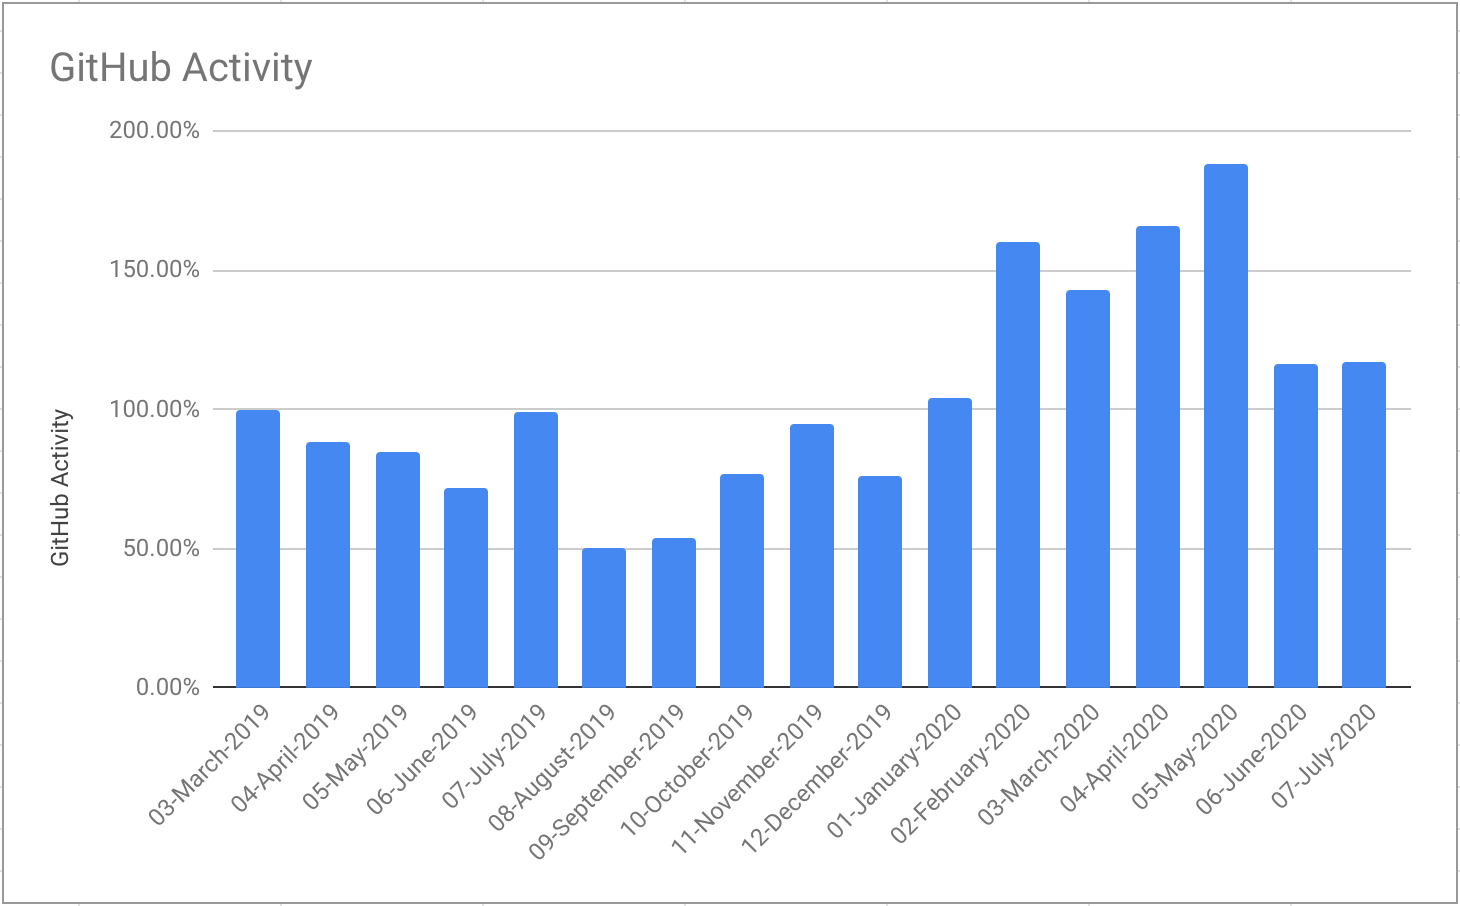 GitHub activity normalized against the first month